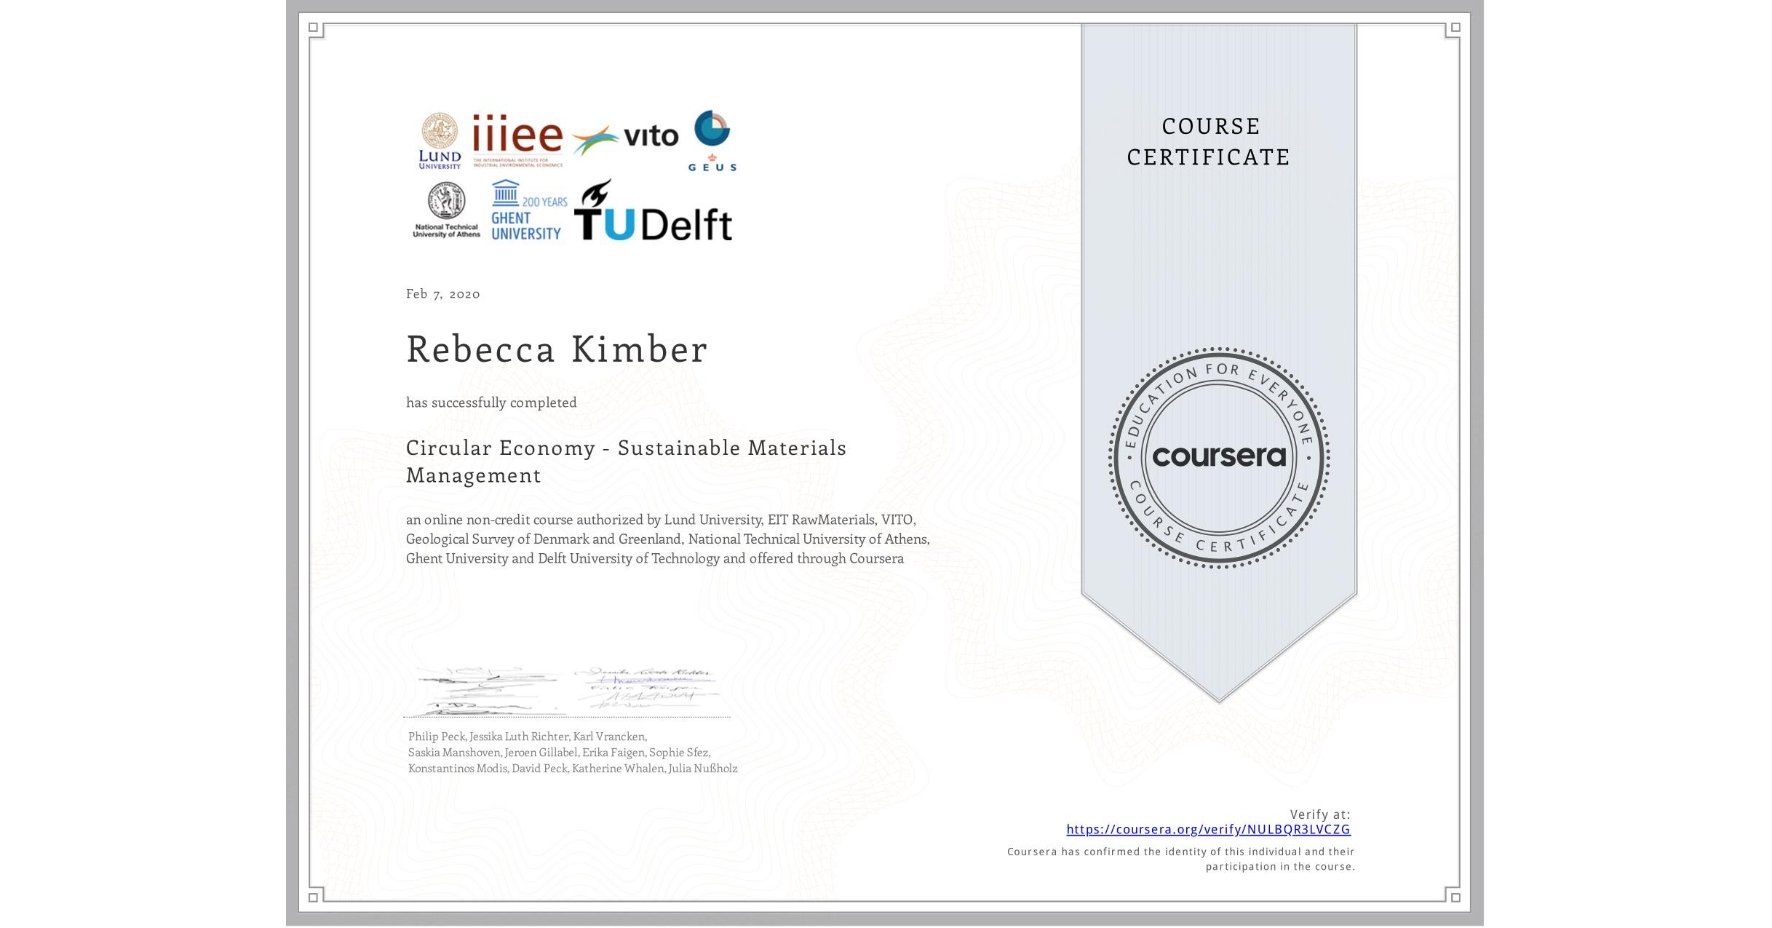 View certificate for Rebecca Kimber, Circular Economy - Sustainable Materials Management, an online non-credit course authorized by National Technical University of Athens, EIT RawMaterials, Ghent University, VITO, Geological Survey of Denmark and Greenland, Lund University & Delft University of Technology and offered through Coursera